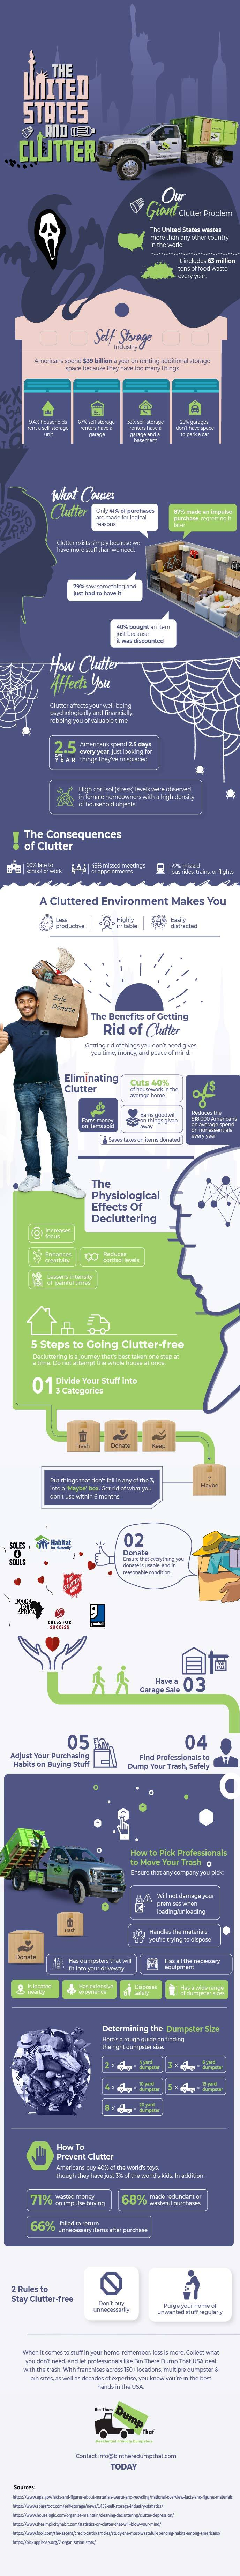 The United States and Clutter Infographic